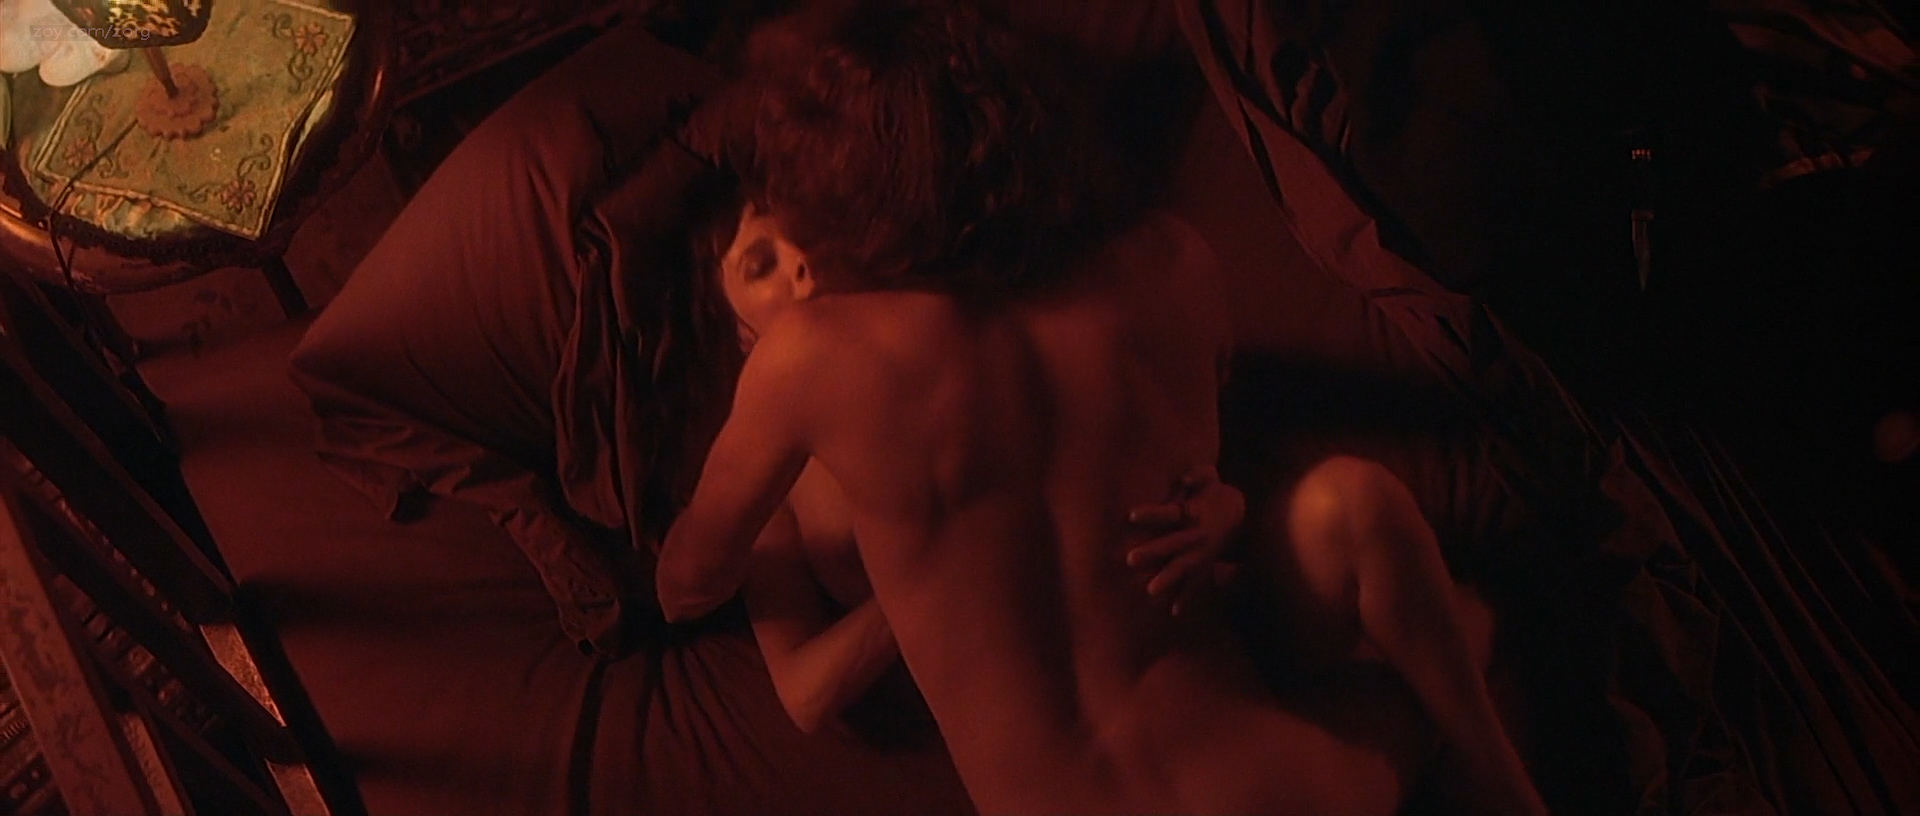 Sarah Gibson Nude Sexy The Fappening Uncensored Photo